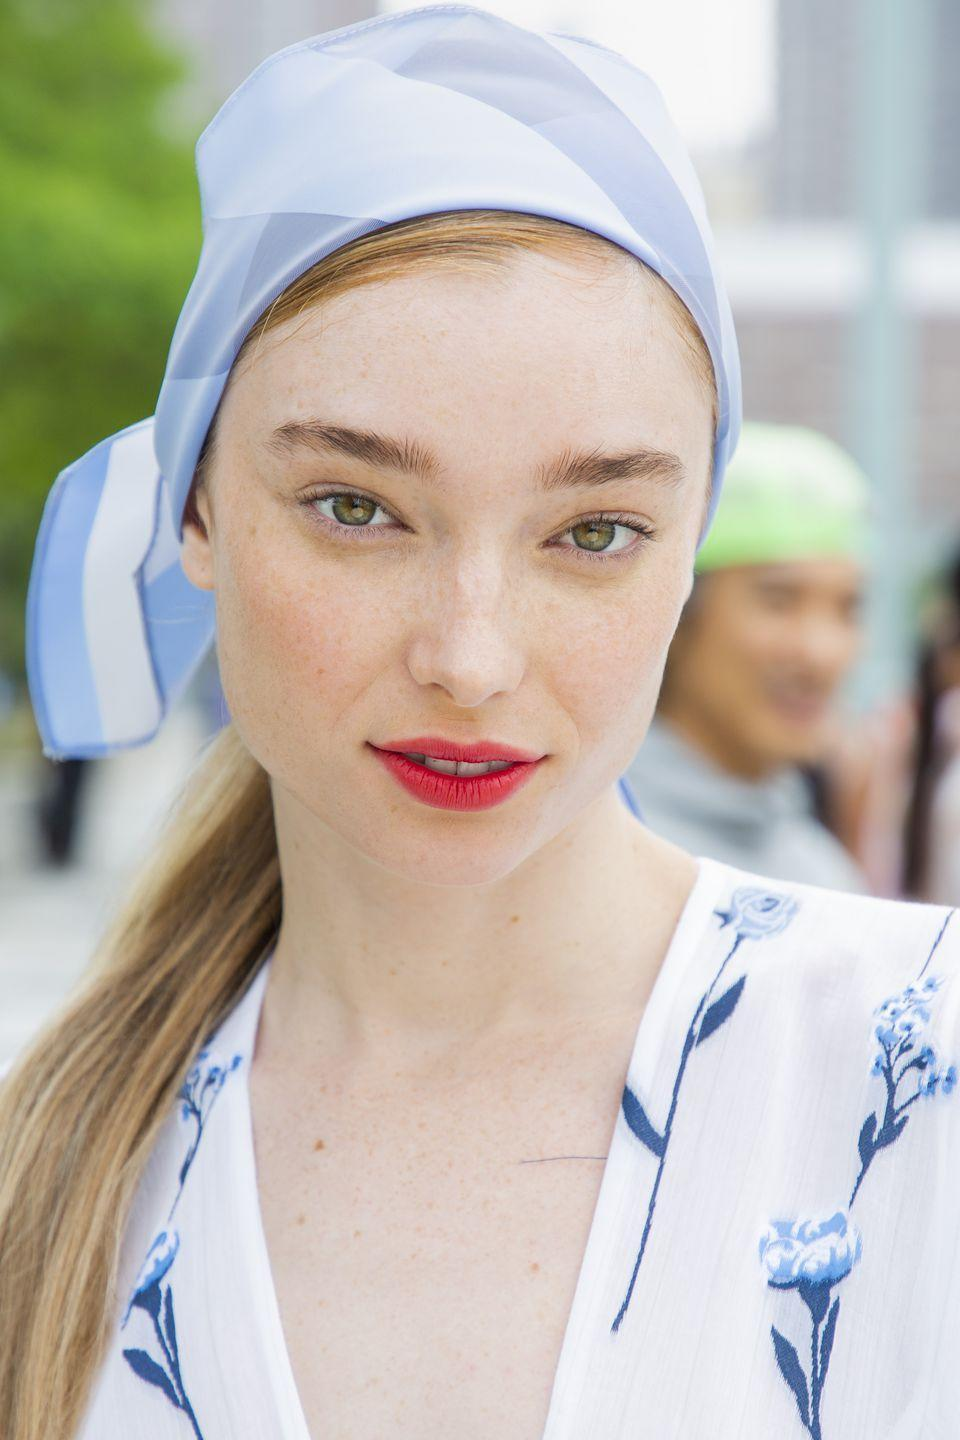 """<p>Makeup artist Kelli J. Bartlett for Glamsquad created the lip at Lela Rose by layering several products. She start edwith MAC Lasting Sensation Lip Pencil traced all over the lip, then added a layer of MAC Cherry Lip Pencil to just the center of the lip, blurring everything together with a brush.</p><p><a rel=""""nofollow noopener"""" href=""""https://shop.nordstrom.com/s/mac-lip-pencil/2791386"""" target=""""_blank"""" data-ylk=""""slk:SHOP"""" class=""""link rapid-noclick-resp"""">SHOP</a></p>"""